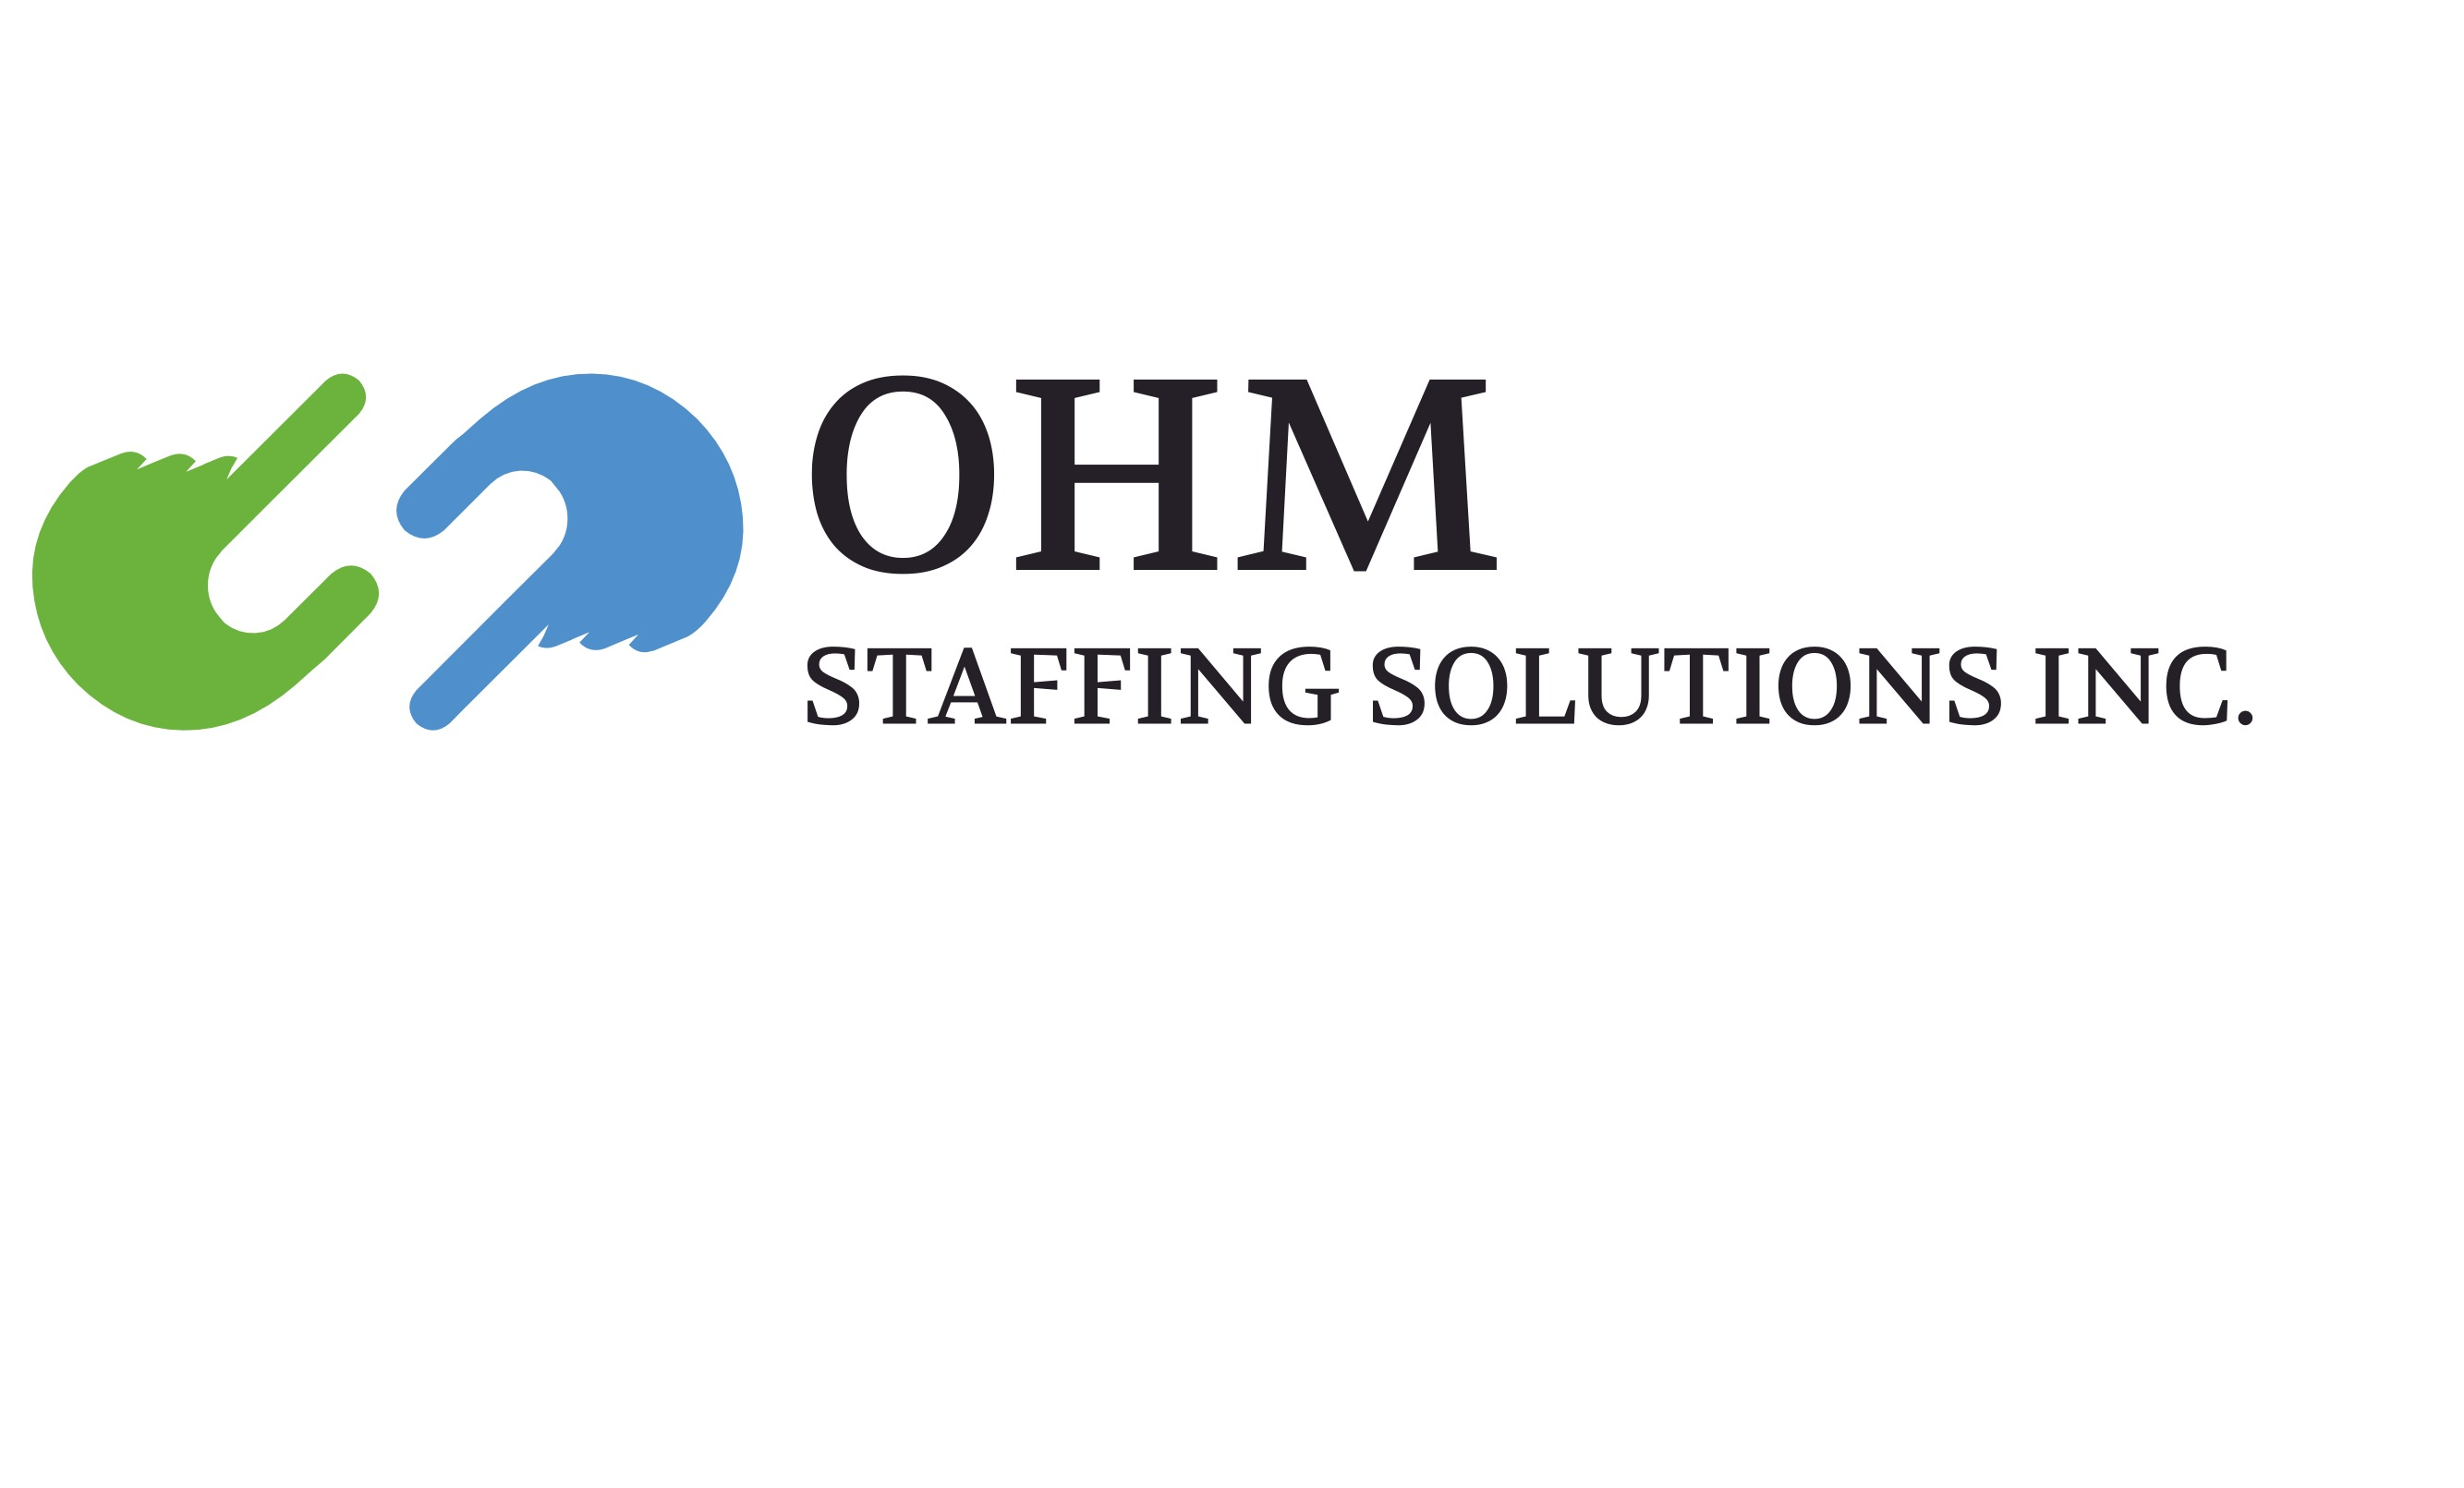 OHM Staffing Solutions Inc.